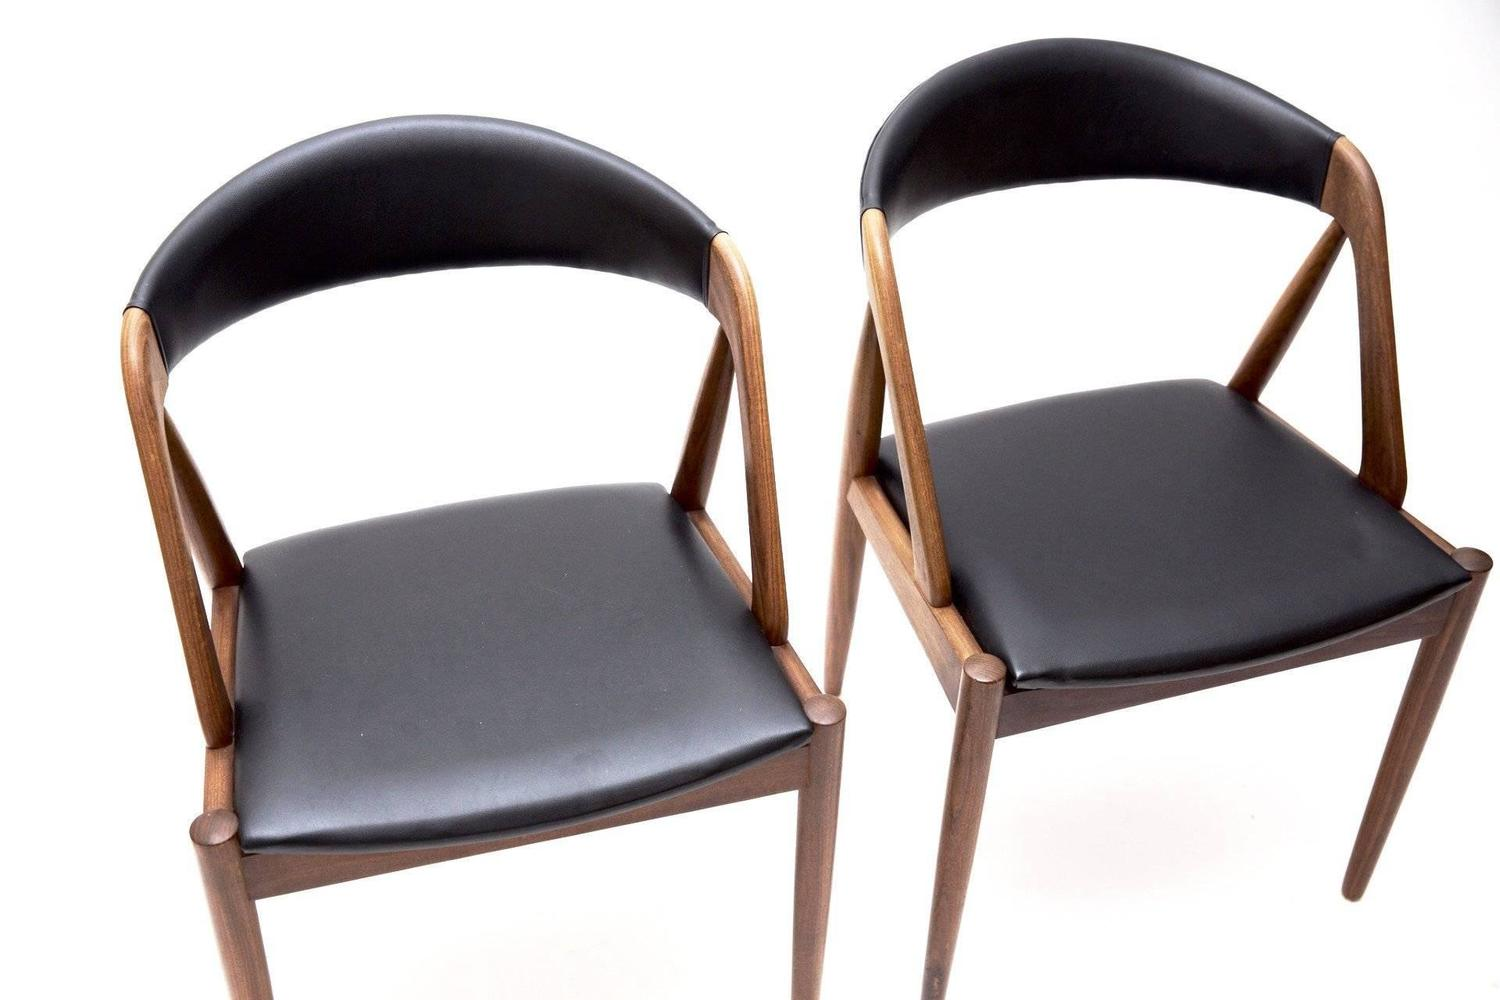 Set Of Four Kai Kristiansen Chairs Model 31 At 1stdibs